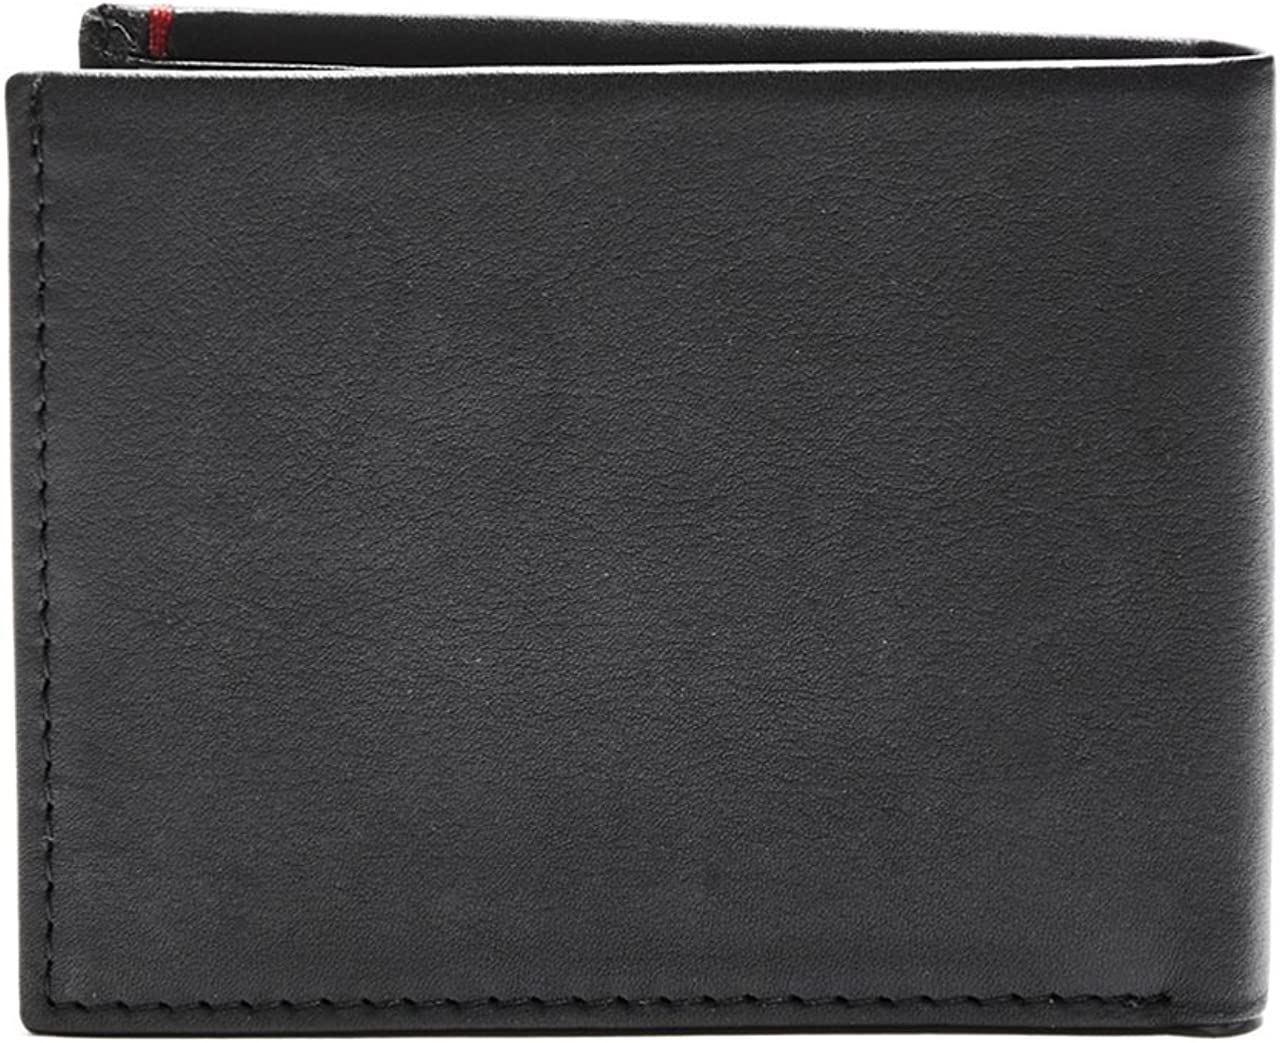 Guess Mens Genuine Leather Slim Card Holder Bifold Wallet with Stitch Details